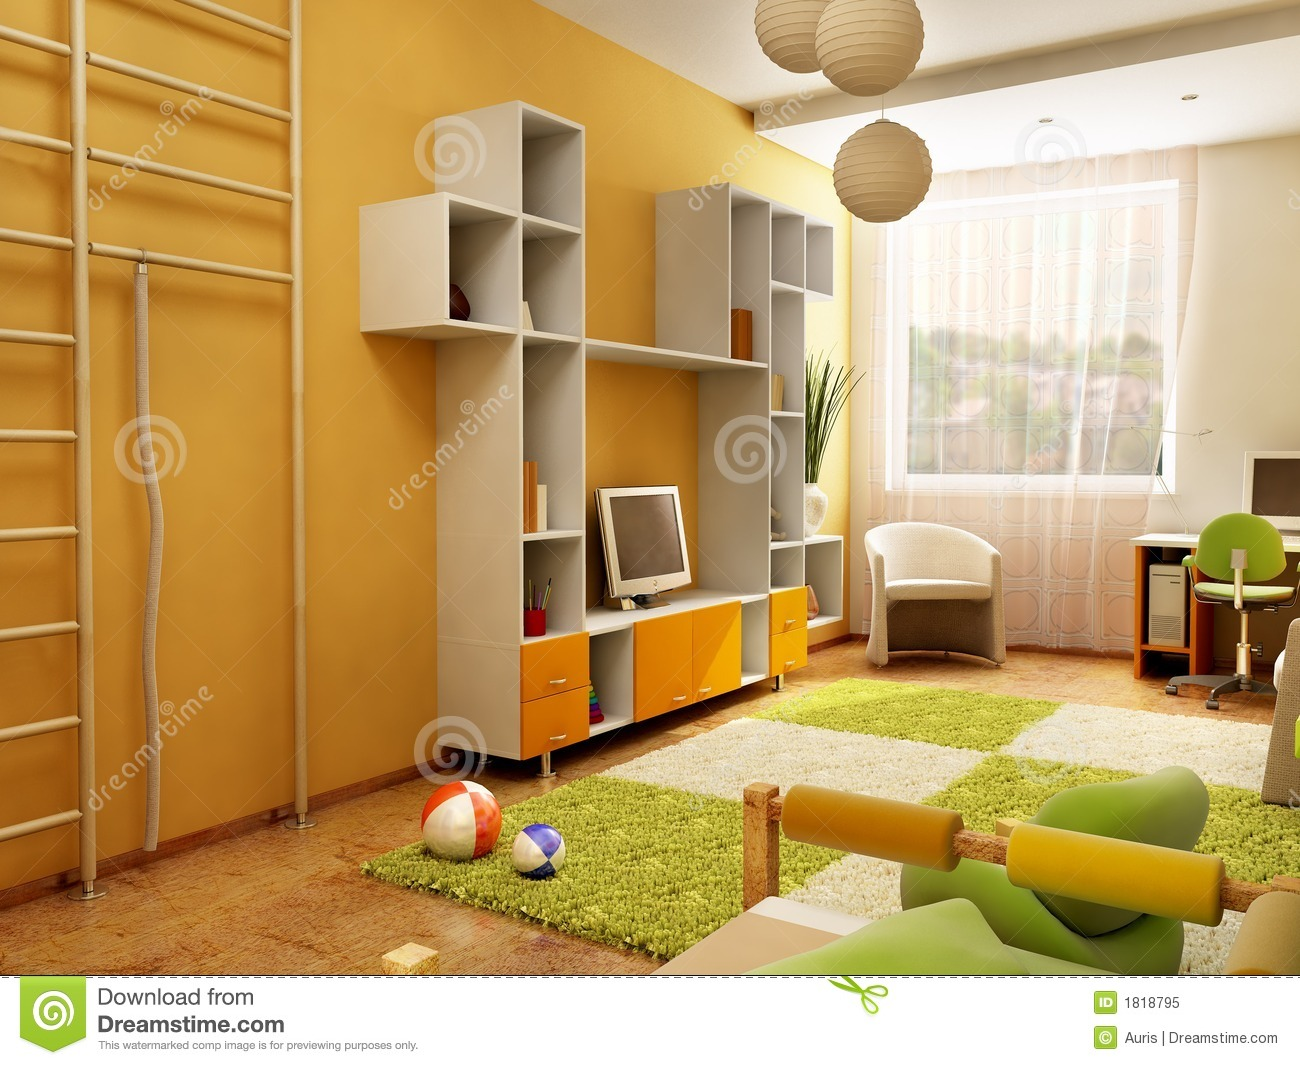 children's room royalty free stock images - image: 2744739